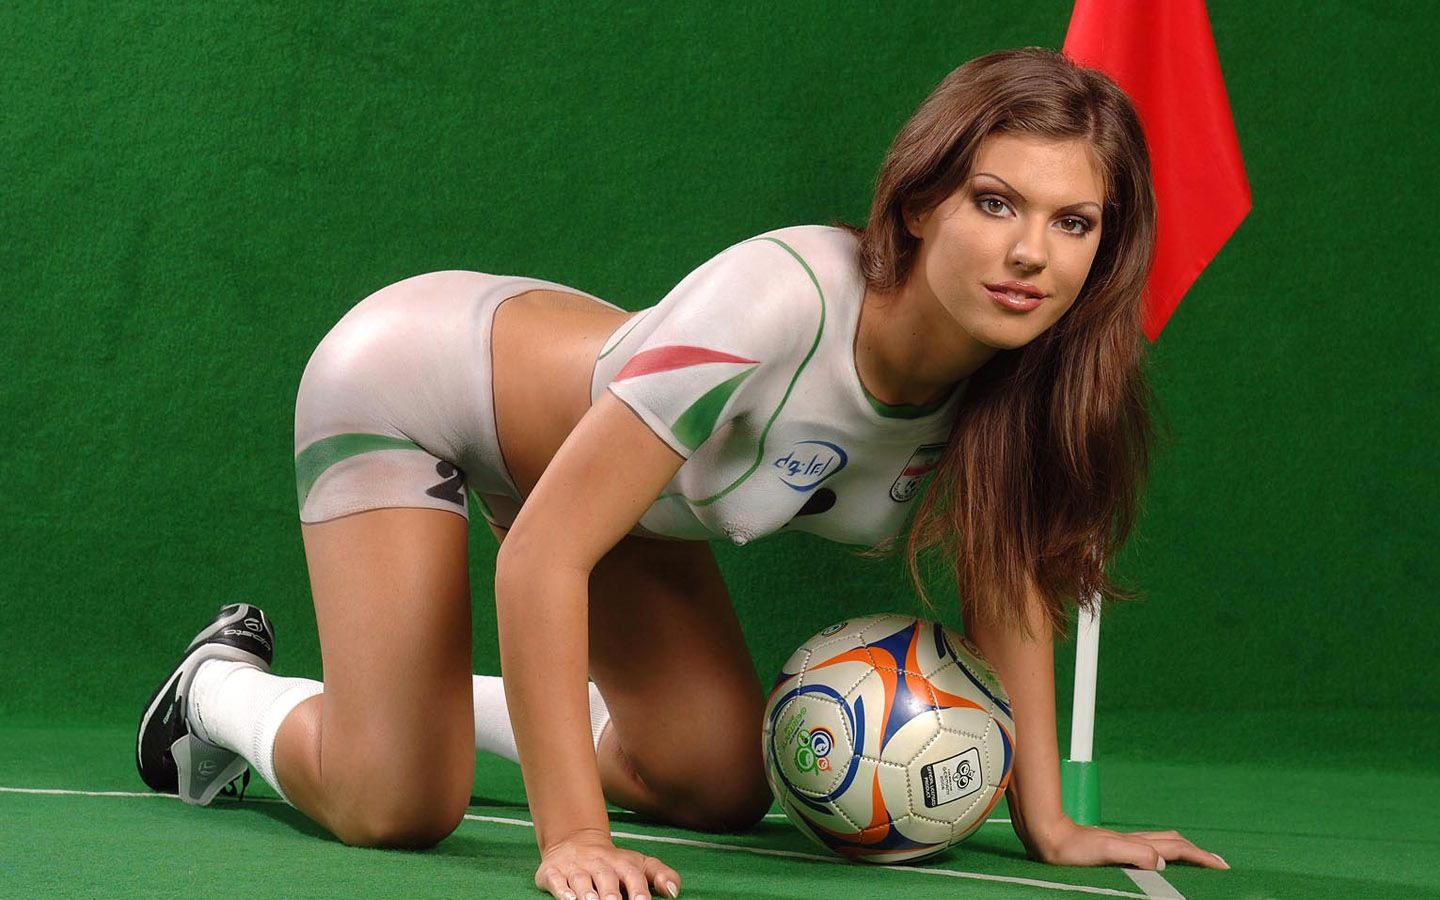 160 Photos to get you ready for the World Cup, the sexy way. - Ultimate World Cup Body Paint Gallery